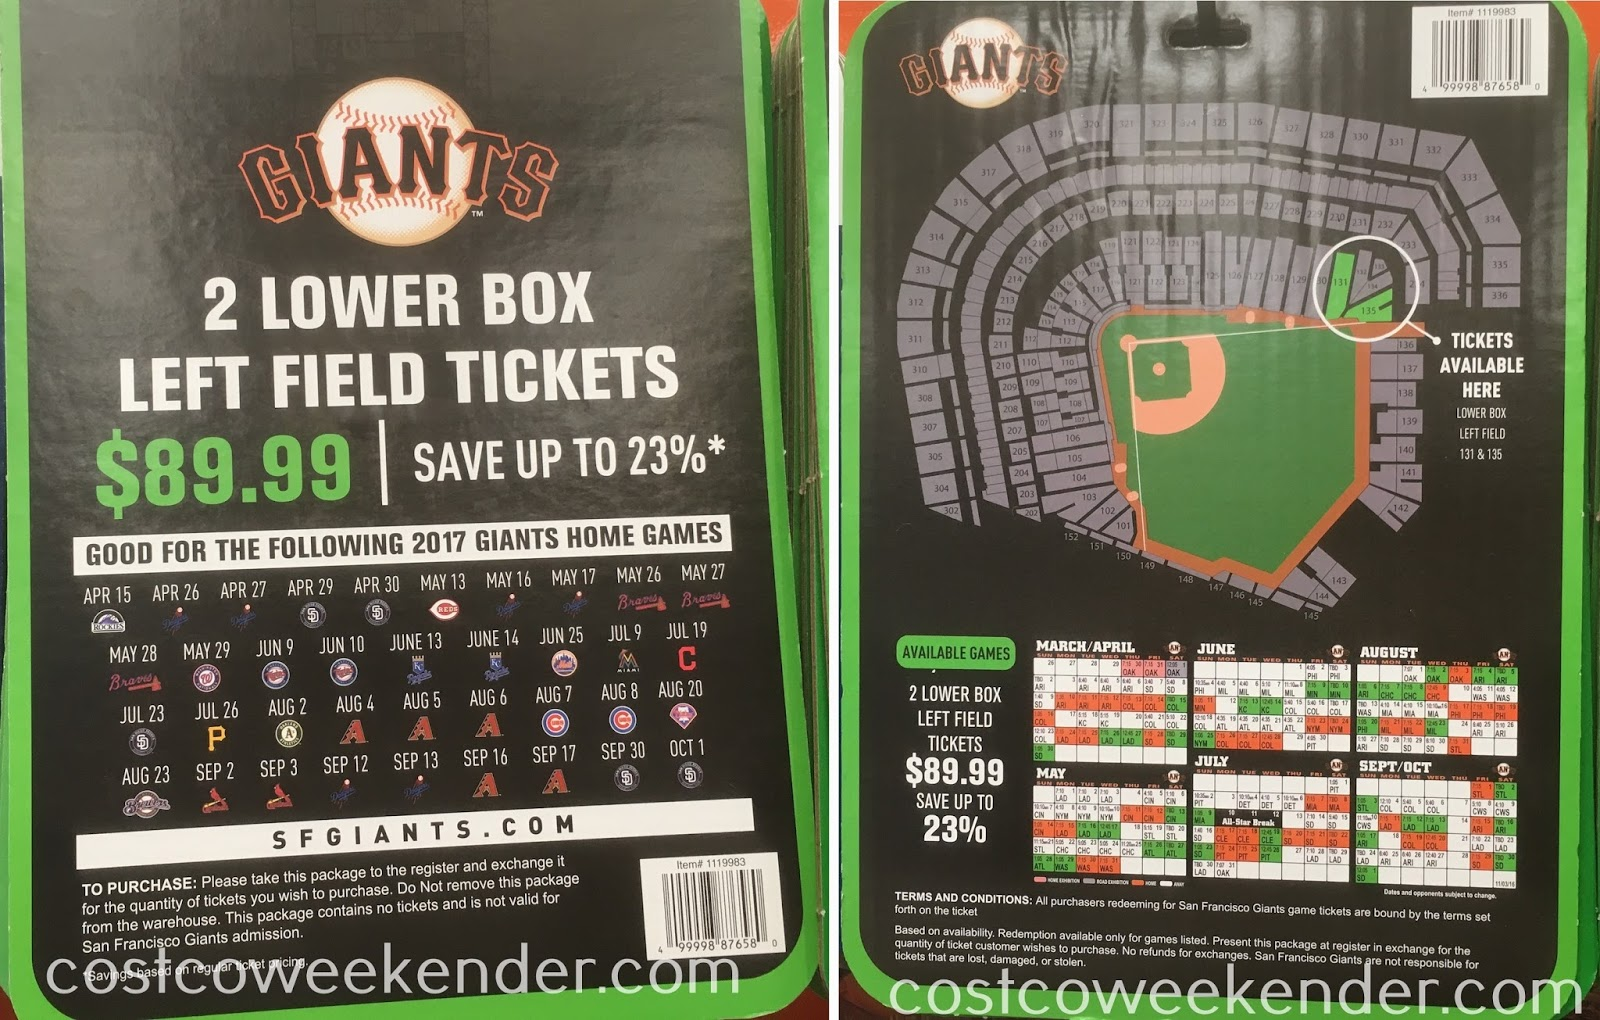 Catch a Giants game at AT&T park for cheap